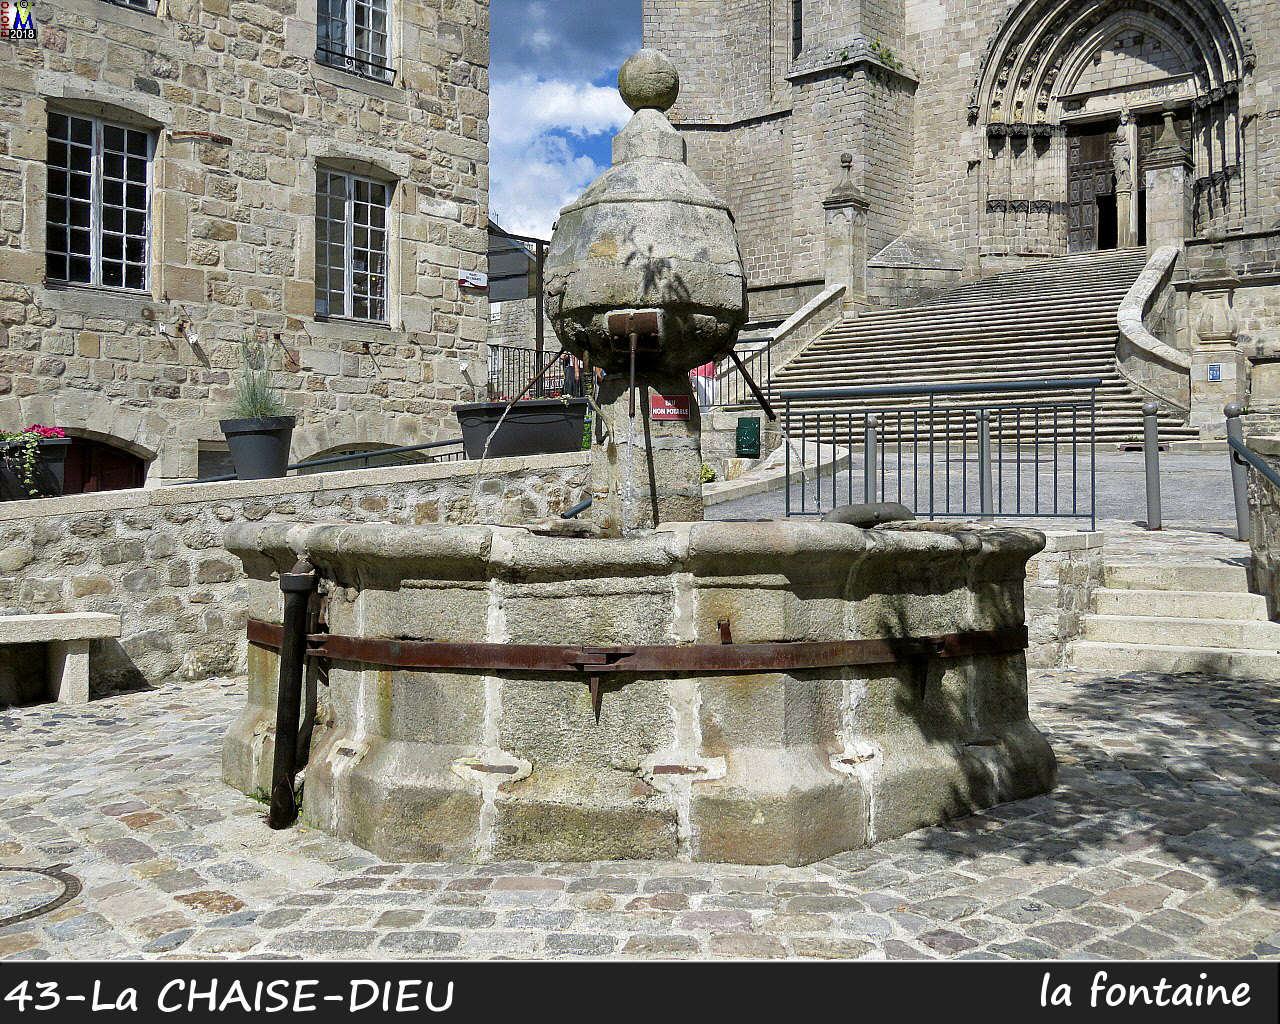 43CHAISE-DIEU_fontaine_100.jpg